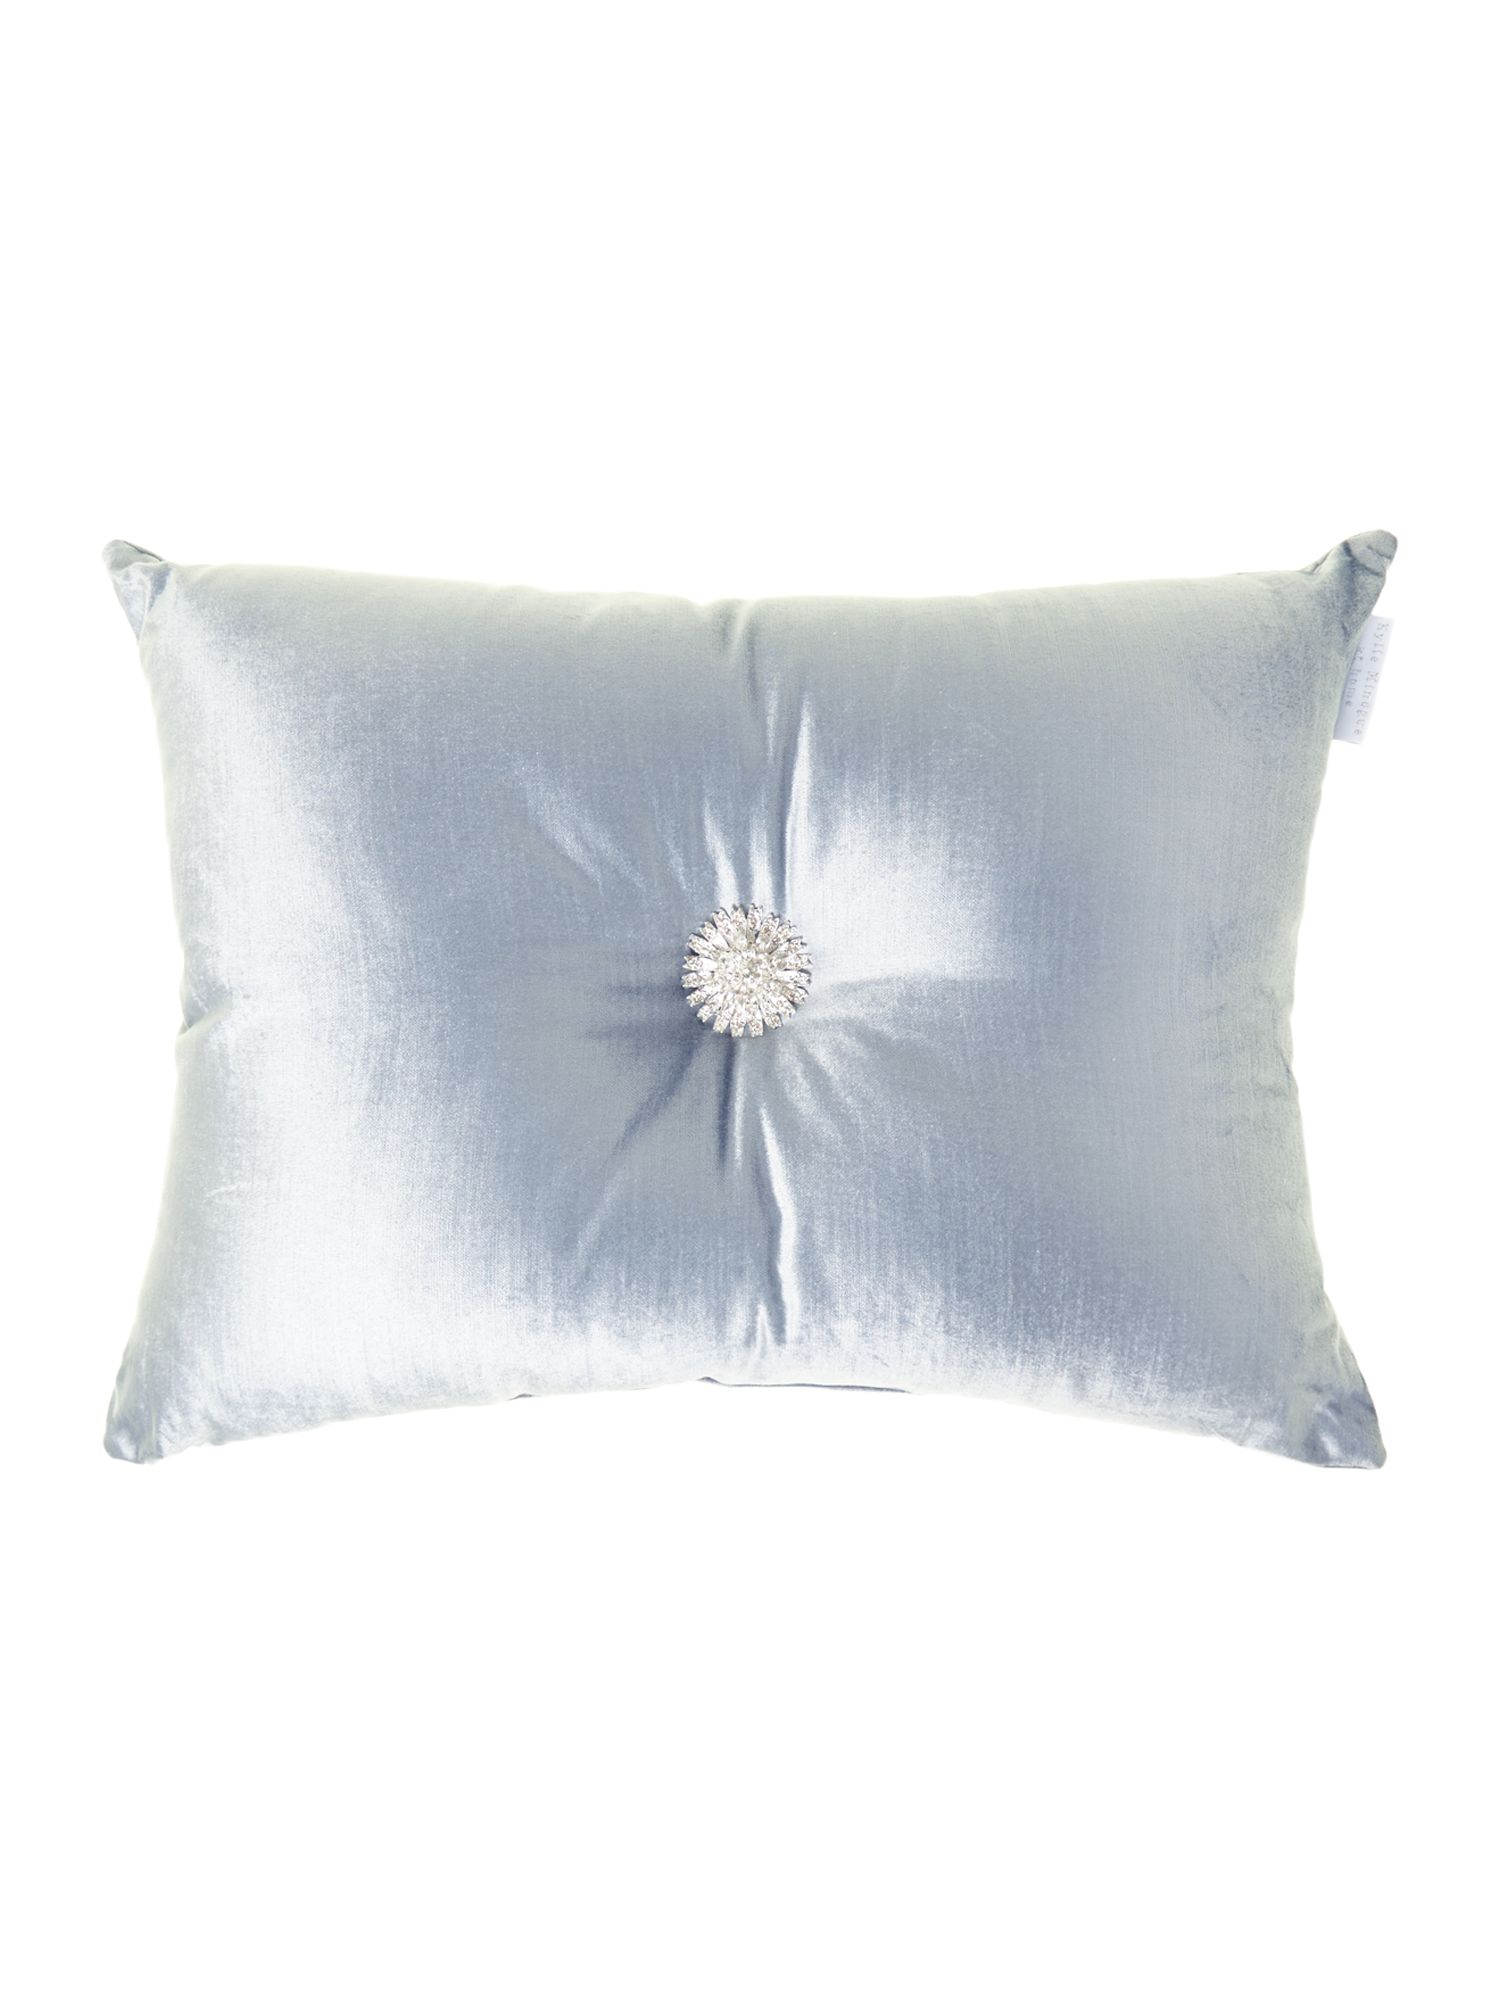 Gabriella cushion silver